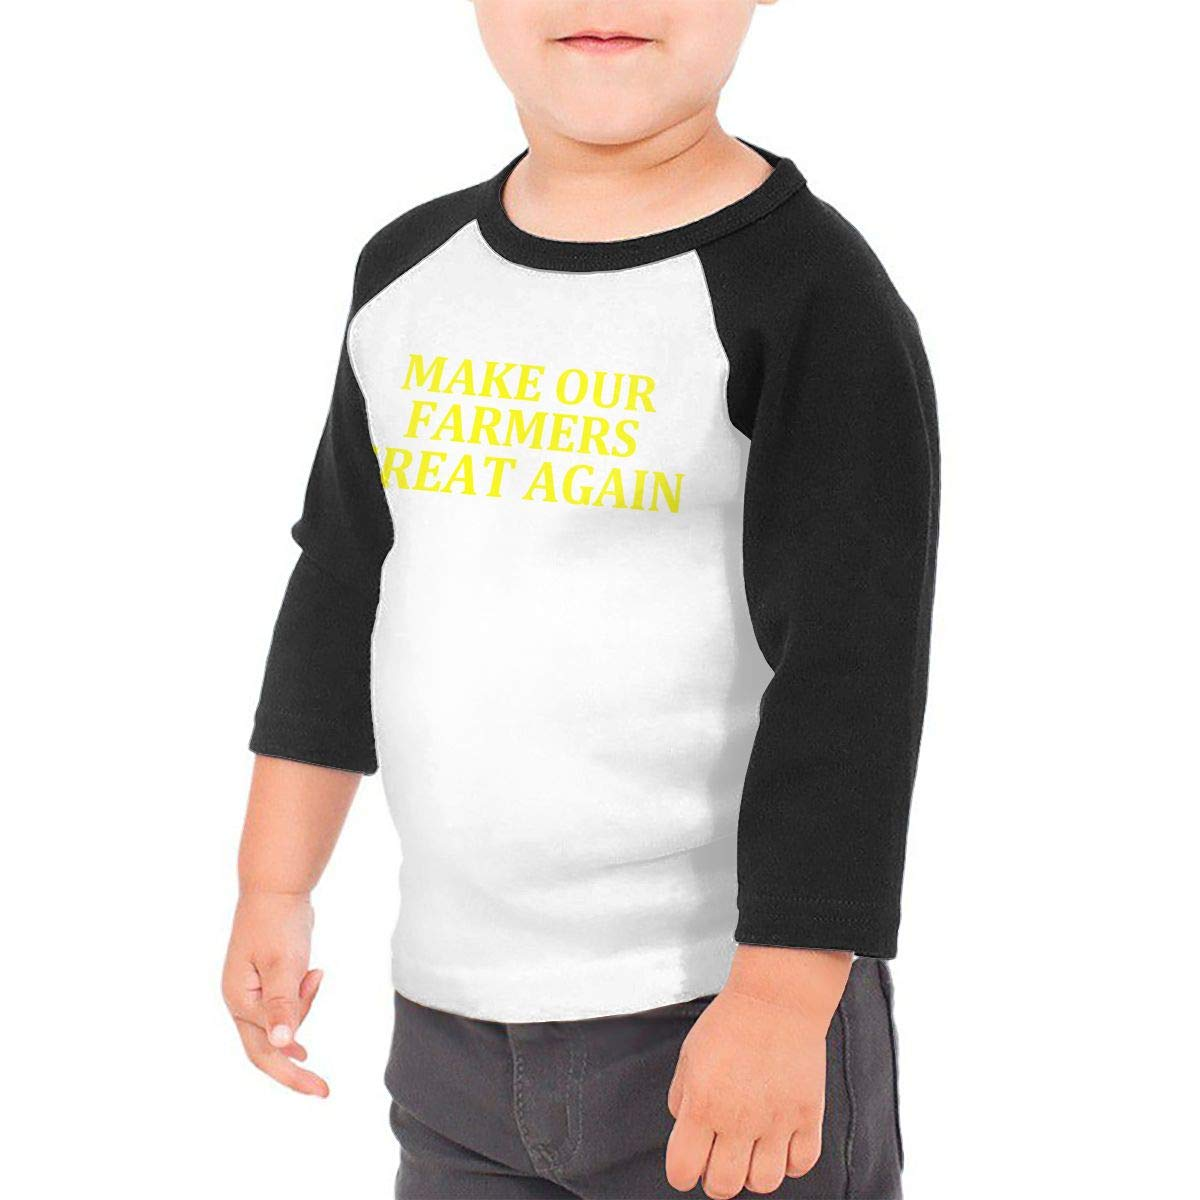 Make Our Farmers Great Again Unisex Toddler Baseball Jersey Contrast 3//4 Sleeves Tee